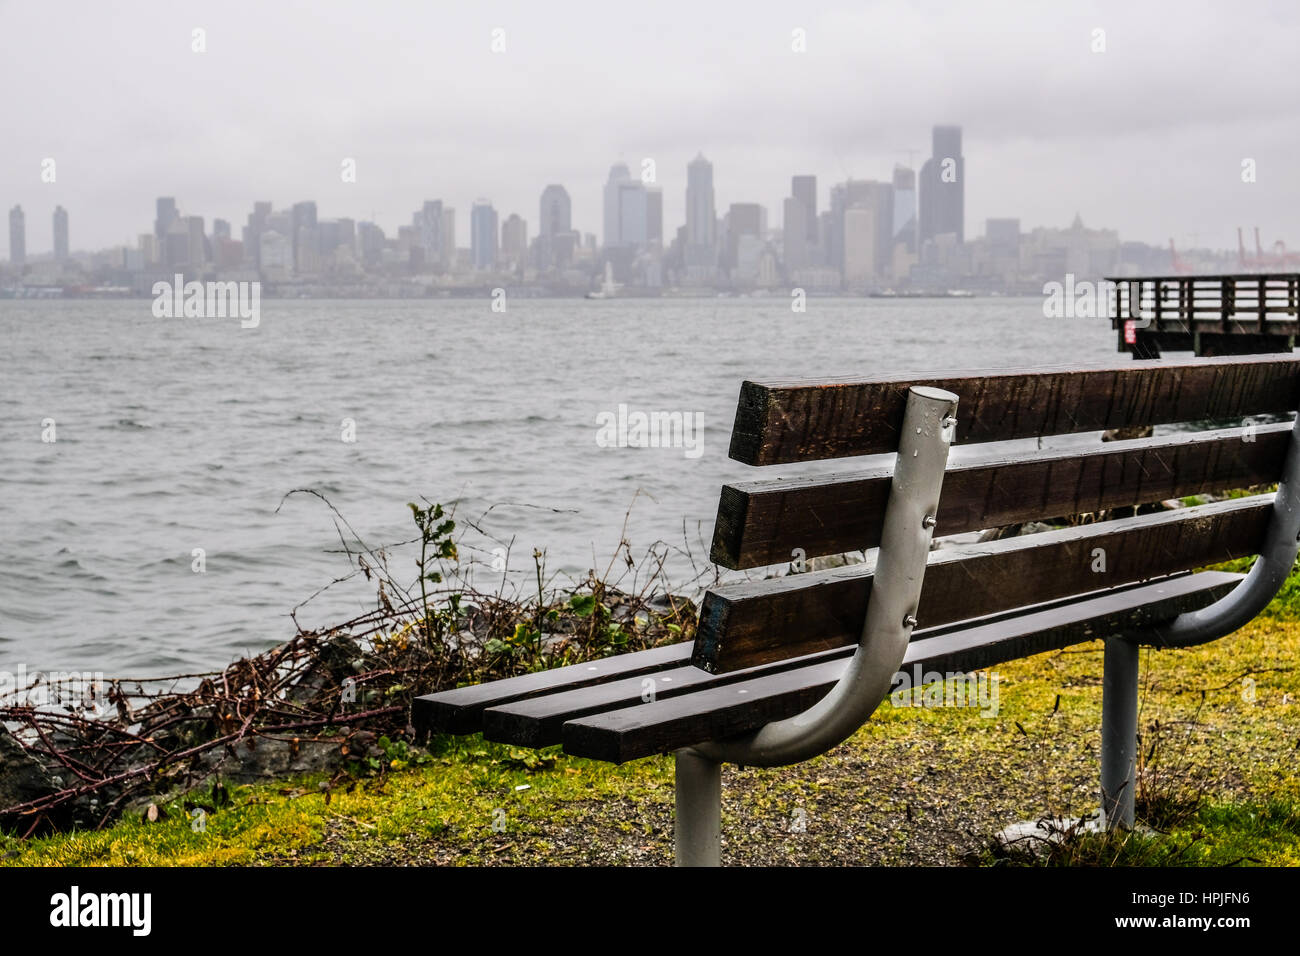 Seattle downtown under gloomy and dark clouds - Stock Image